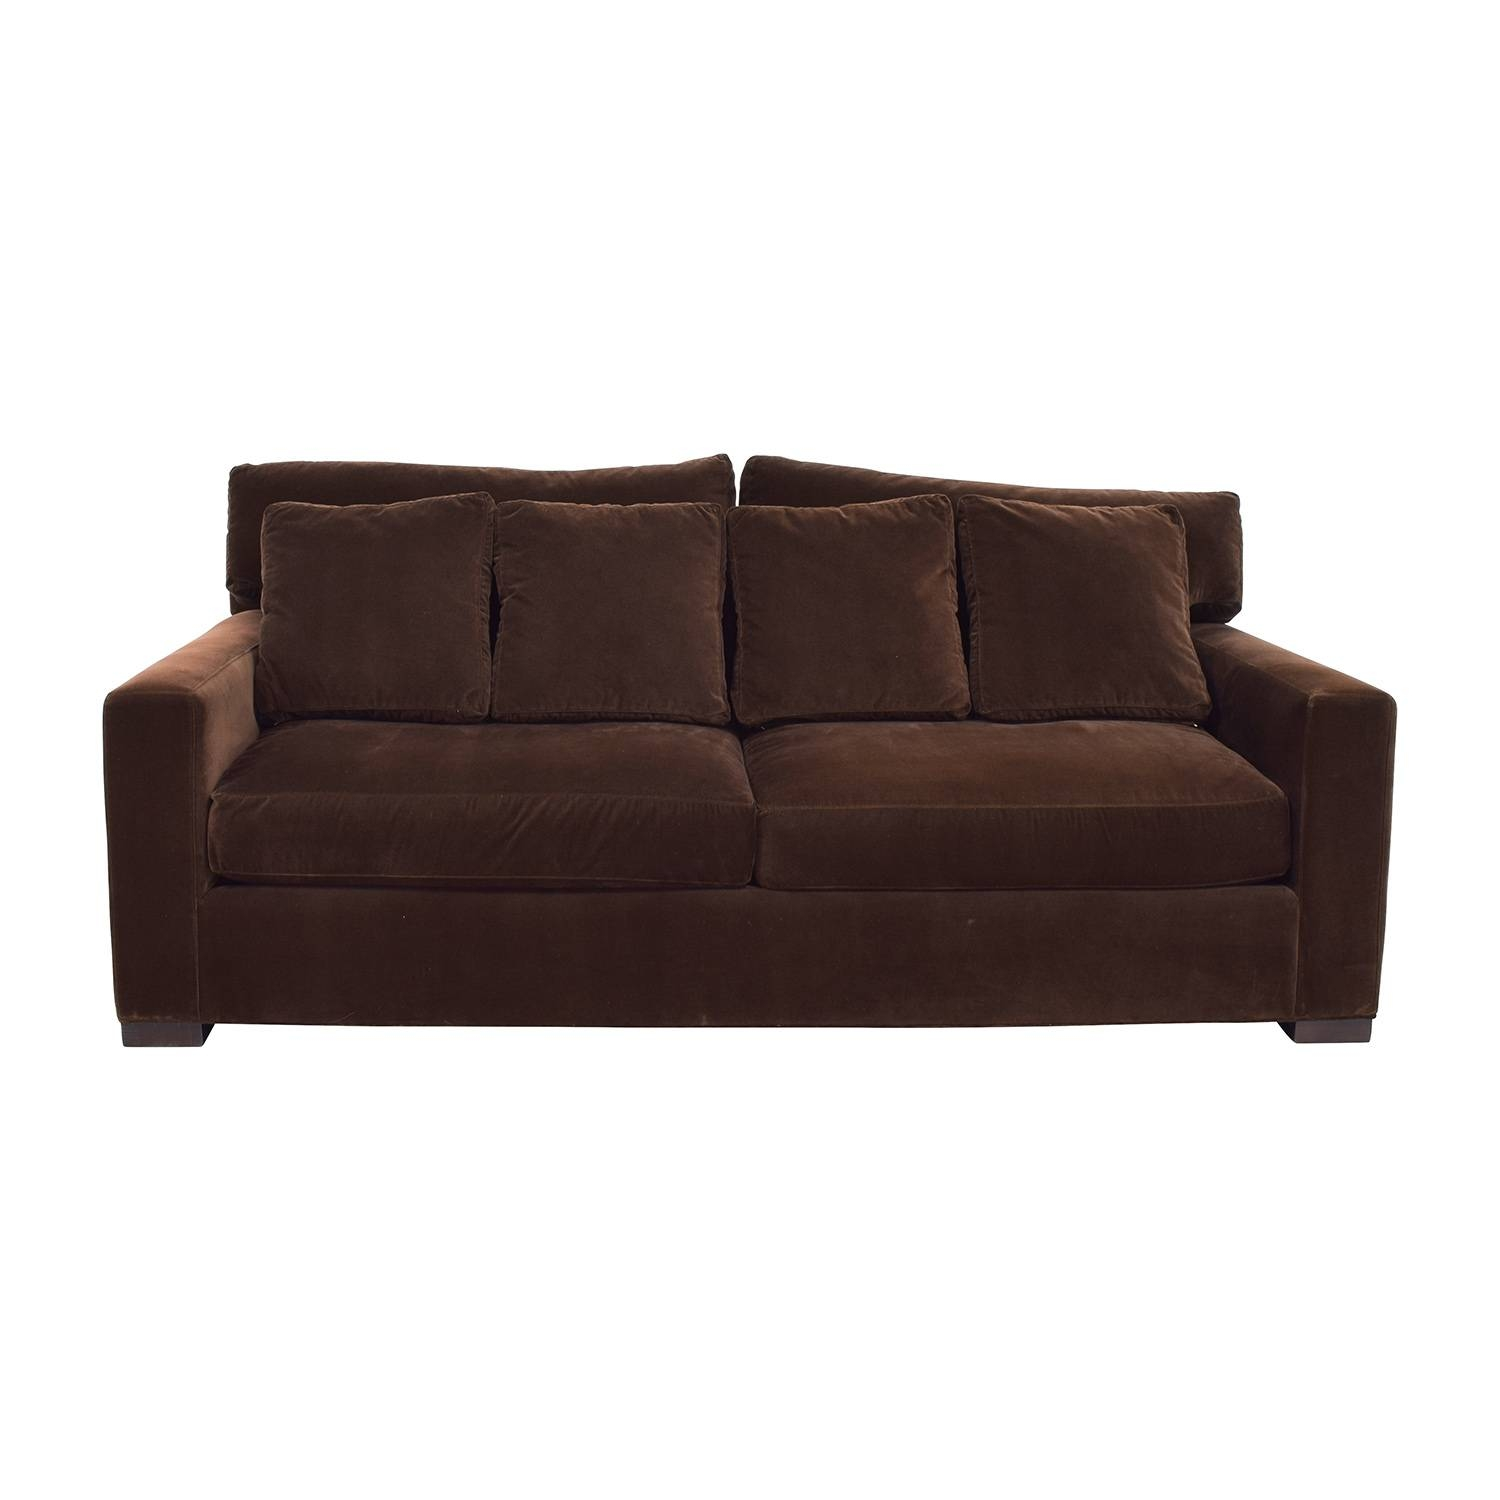 Second Hand Classic Sofas On Sale with regard to Brown Velvet Sofas (Image 10 of 15)